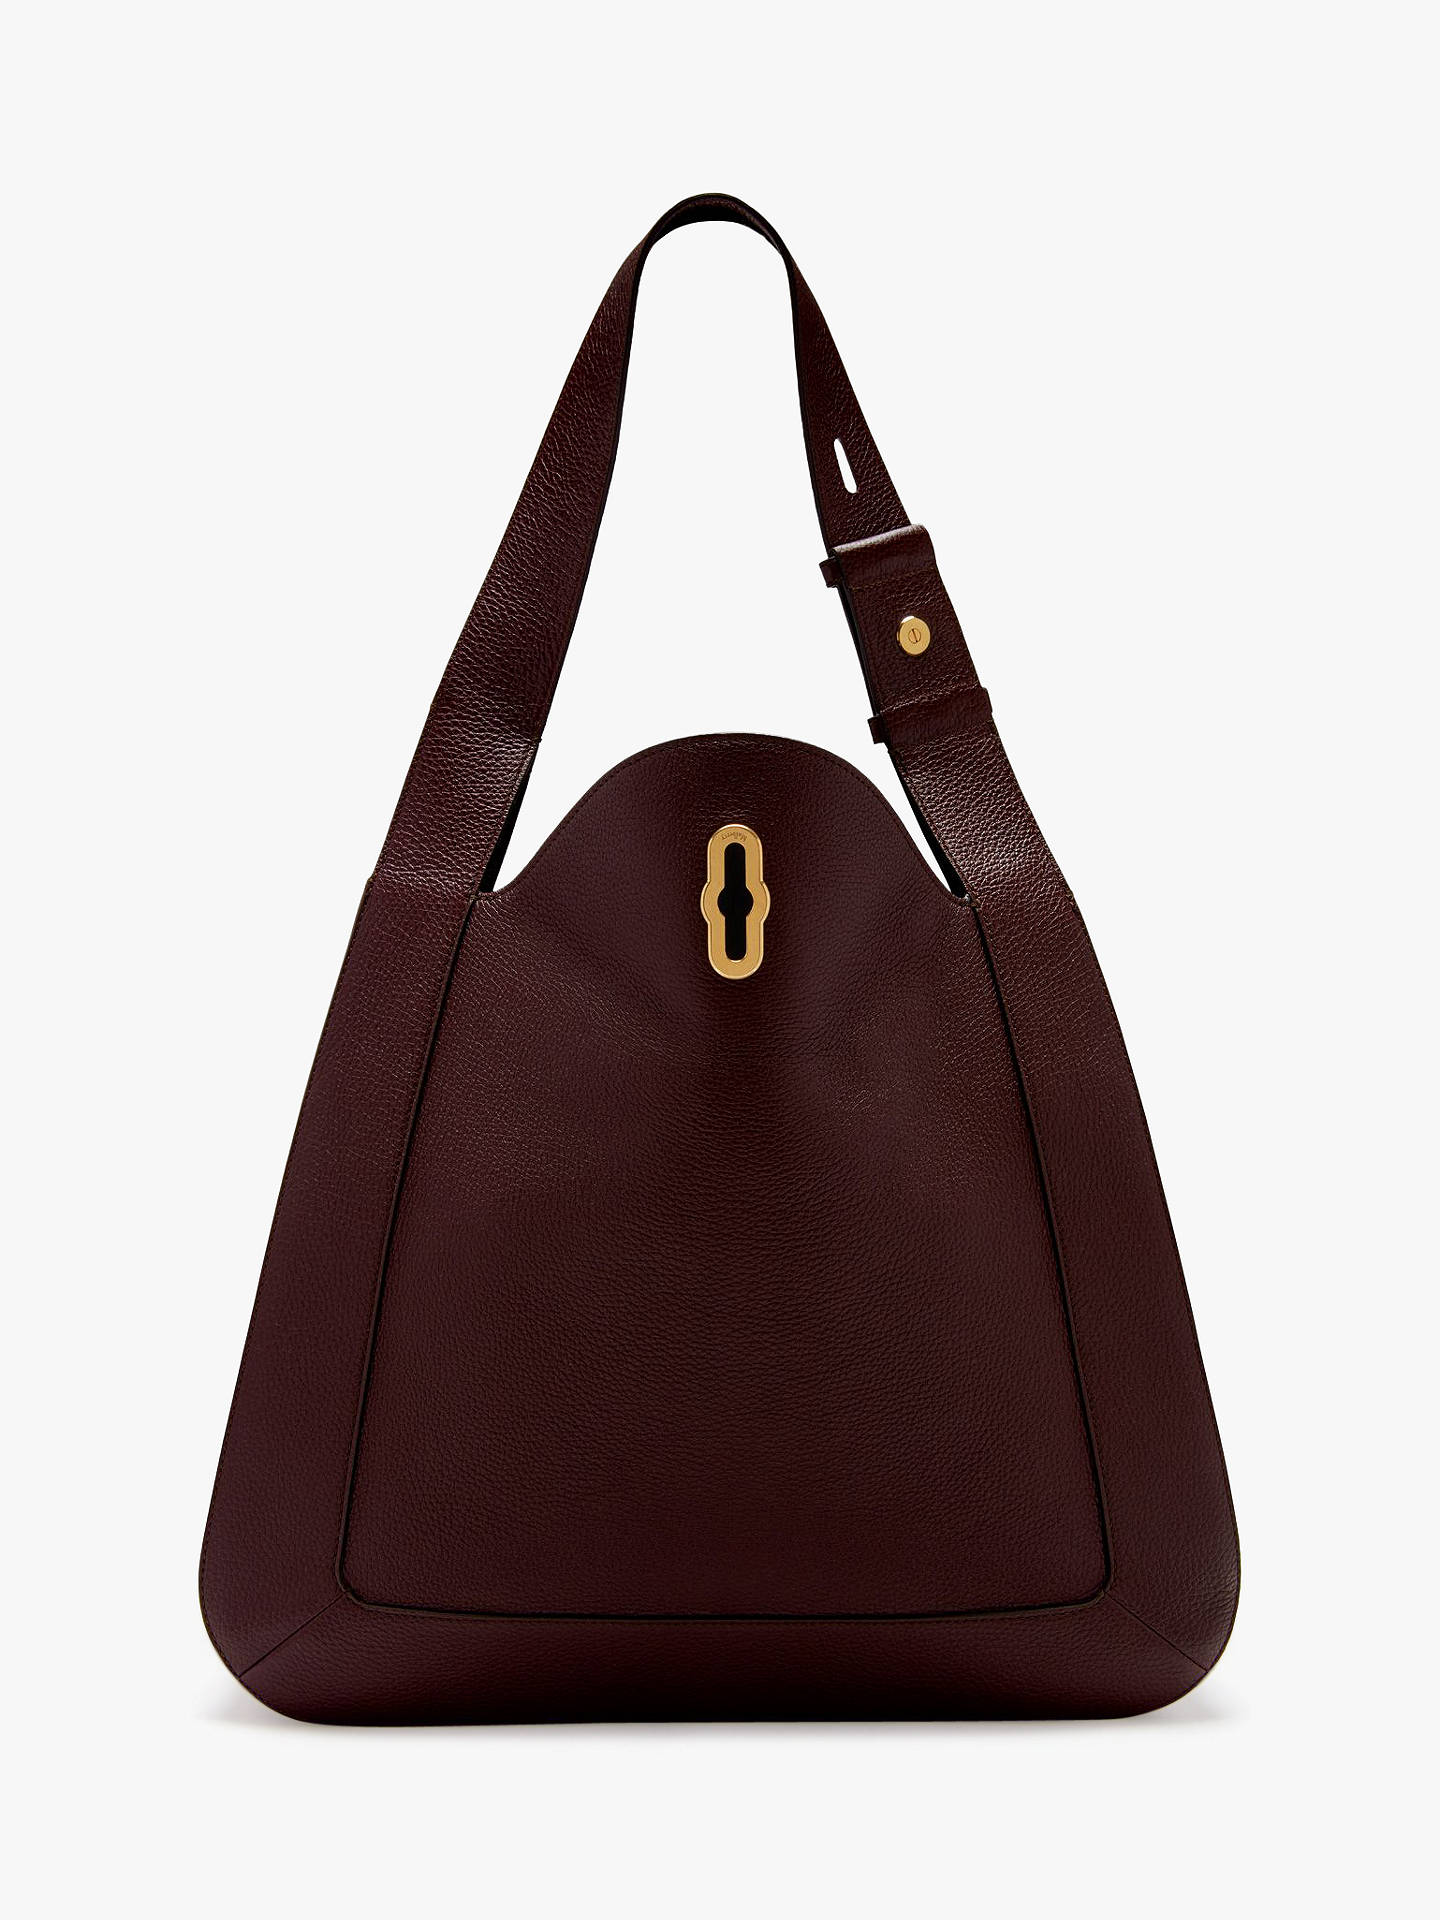 8af5649b75 Mulberry Marloes Small Classic Grain Leather Hobo Bag at John Lewis ...